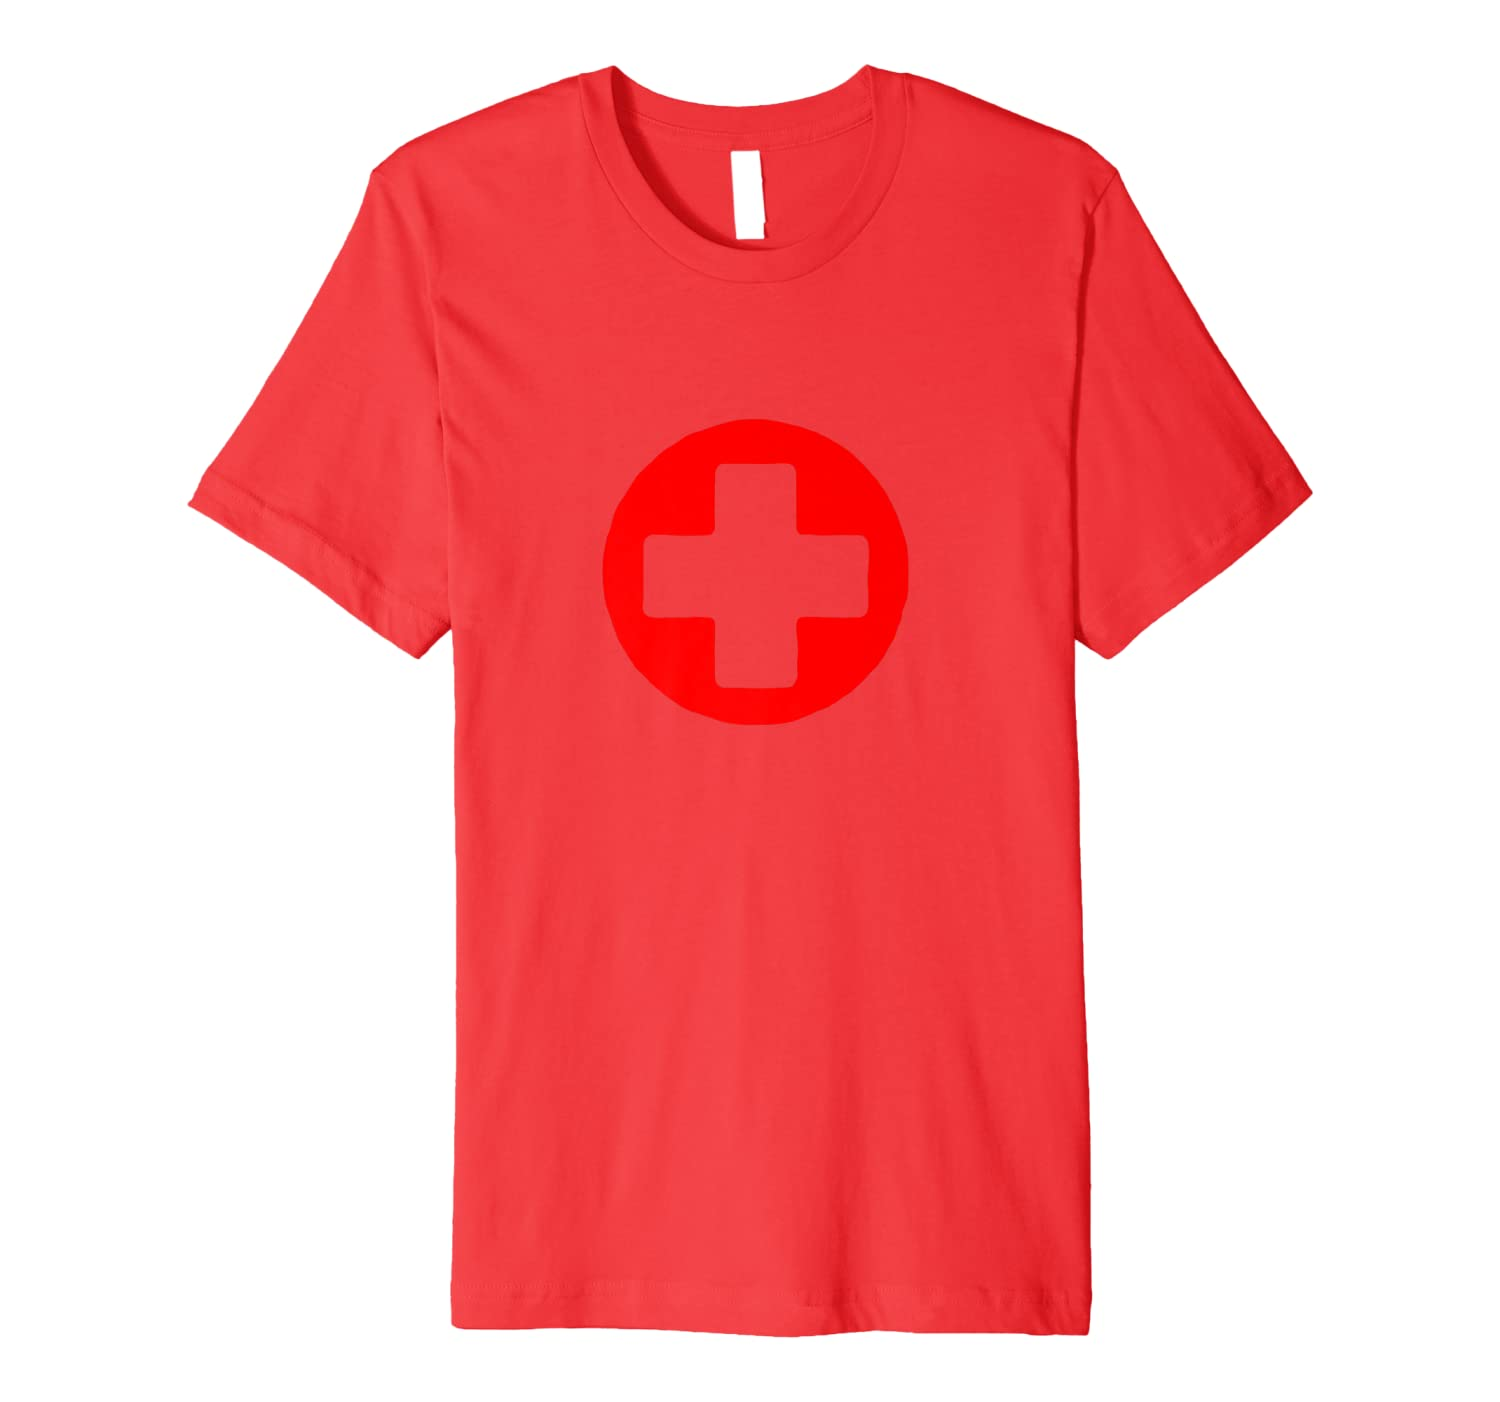 Cross Red Guard Life Nurses Lifeguards T-Shirt Deluxe-ANZ